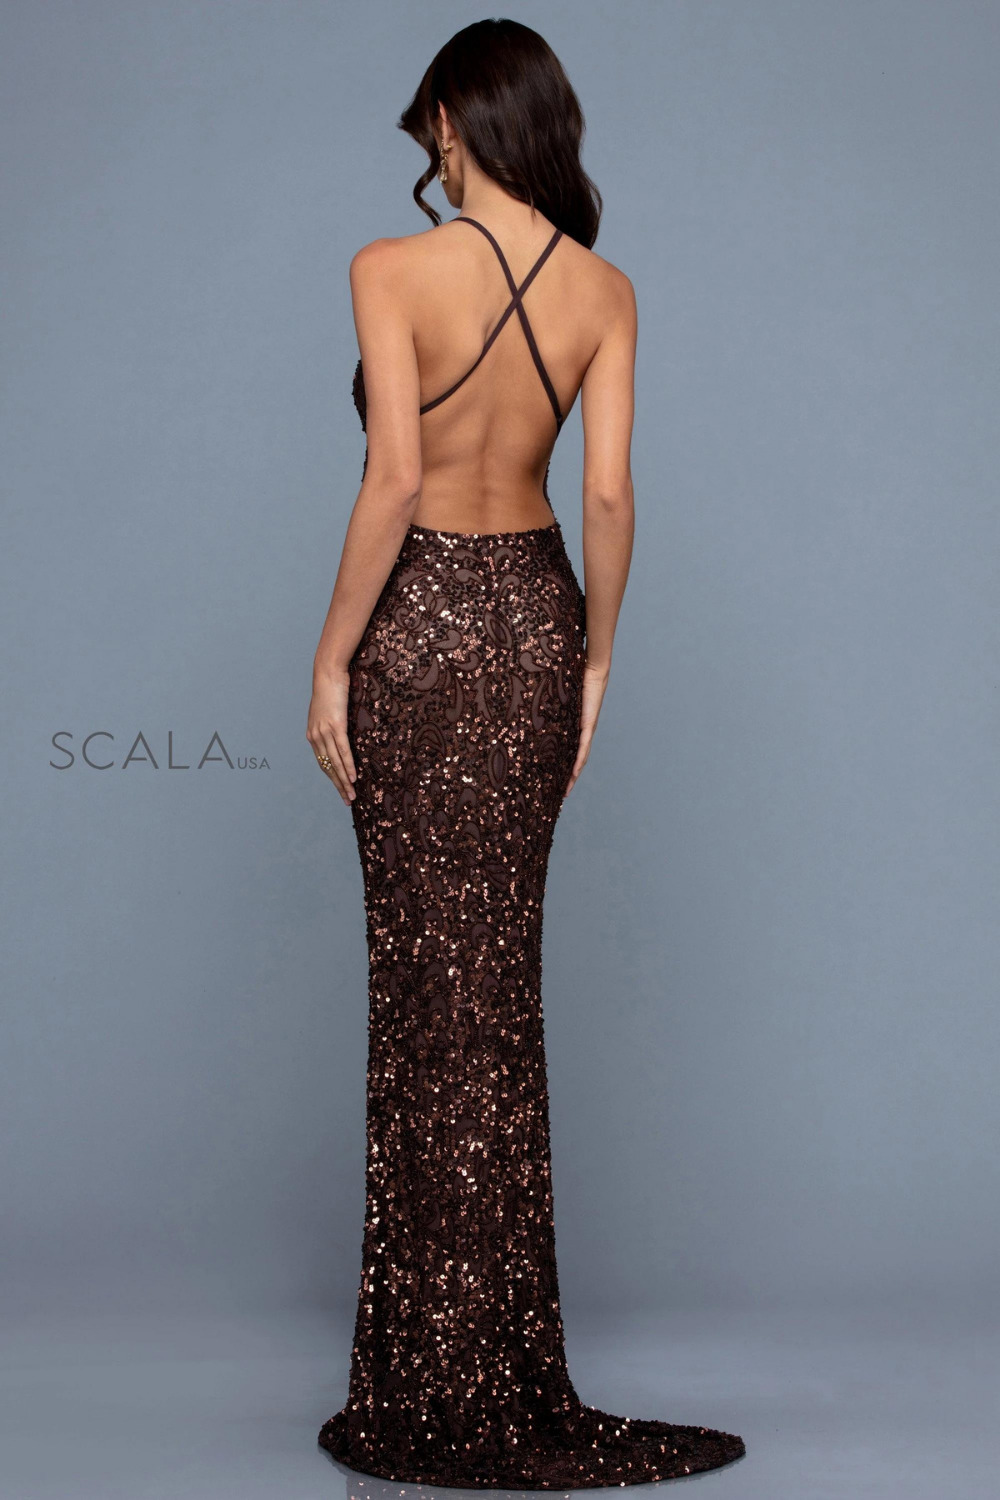 Scala 47542 low back sequin formal dress chocolate brown back